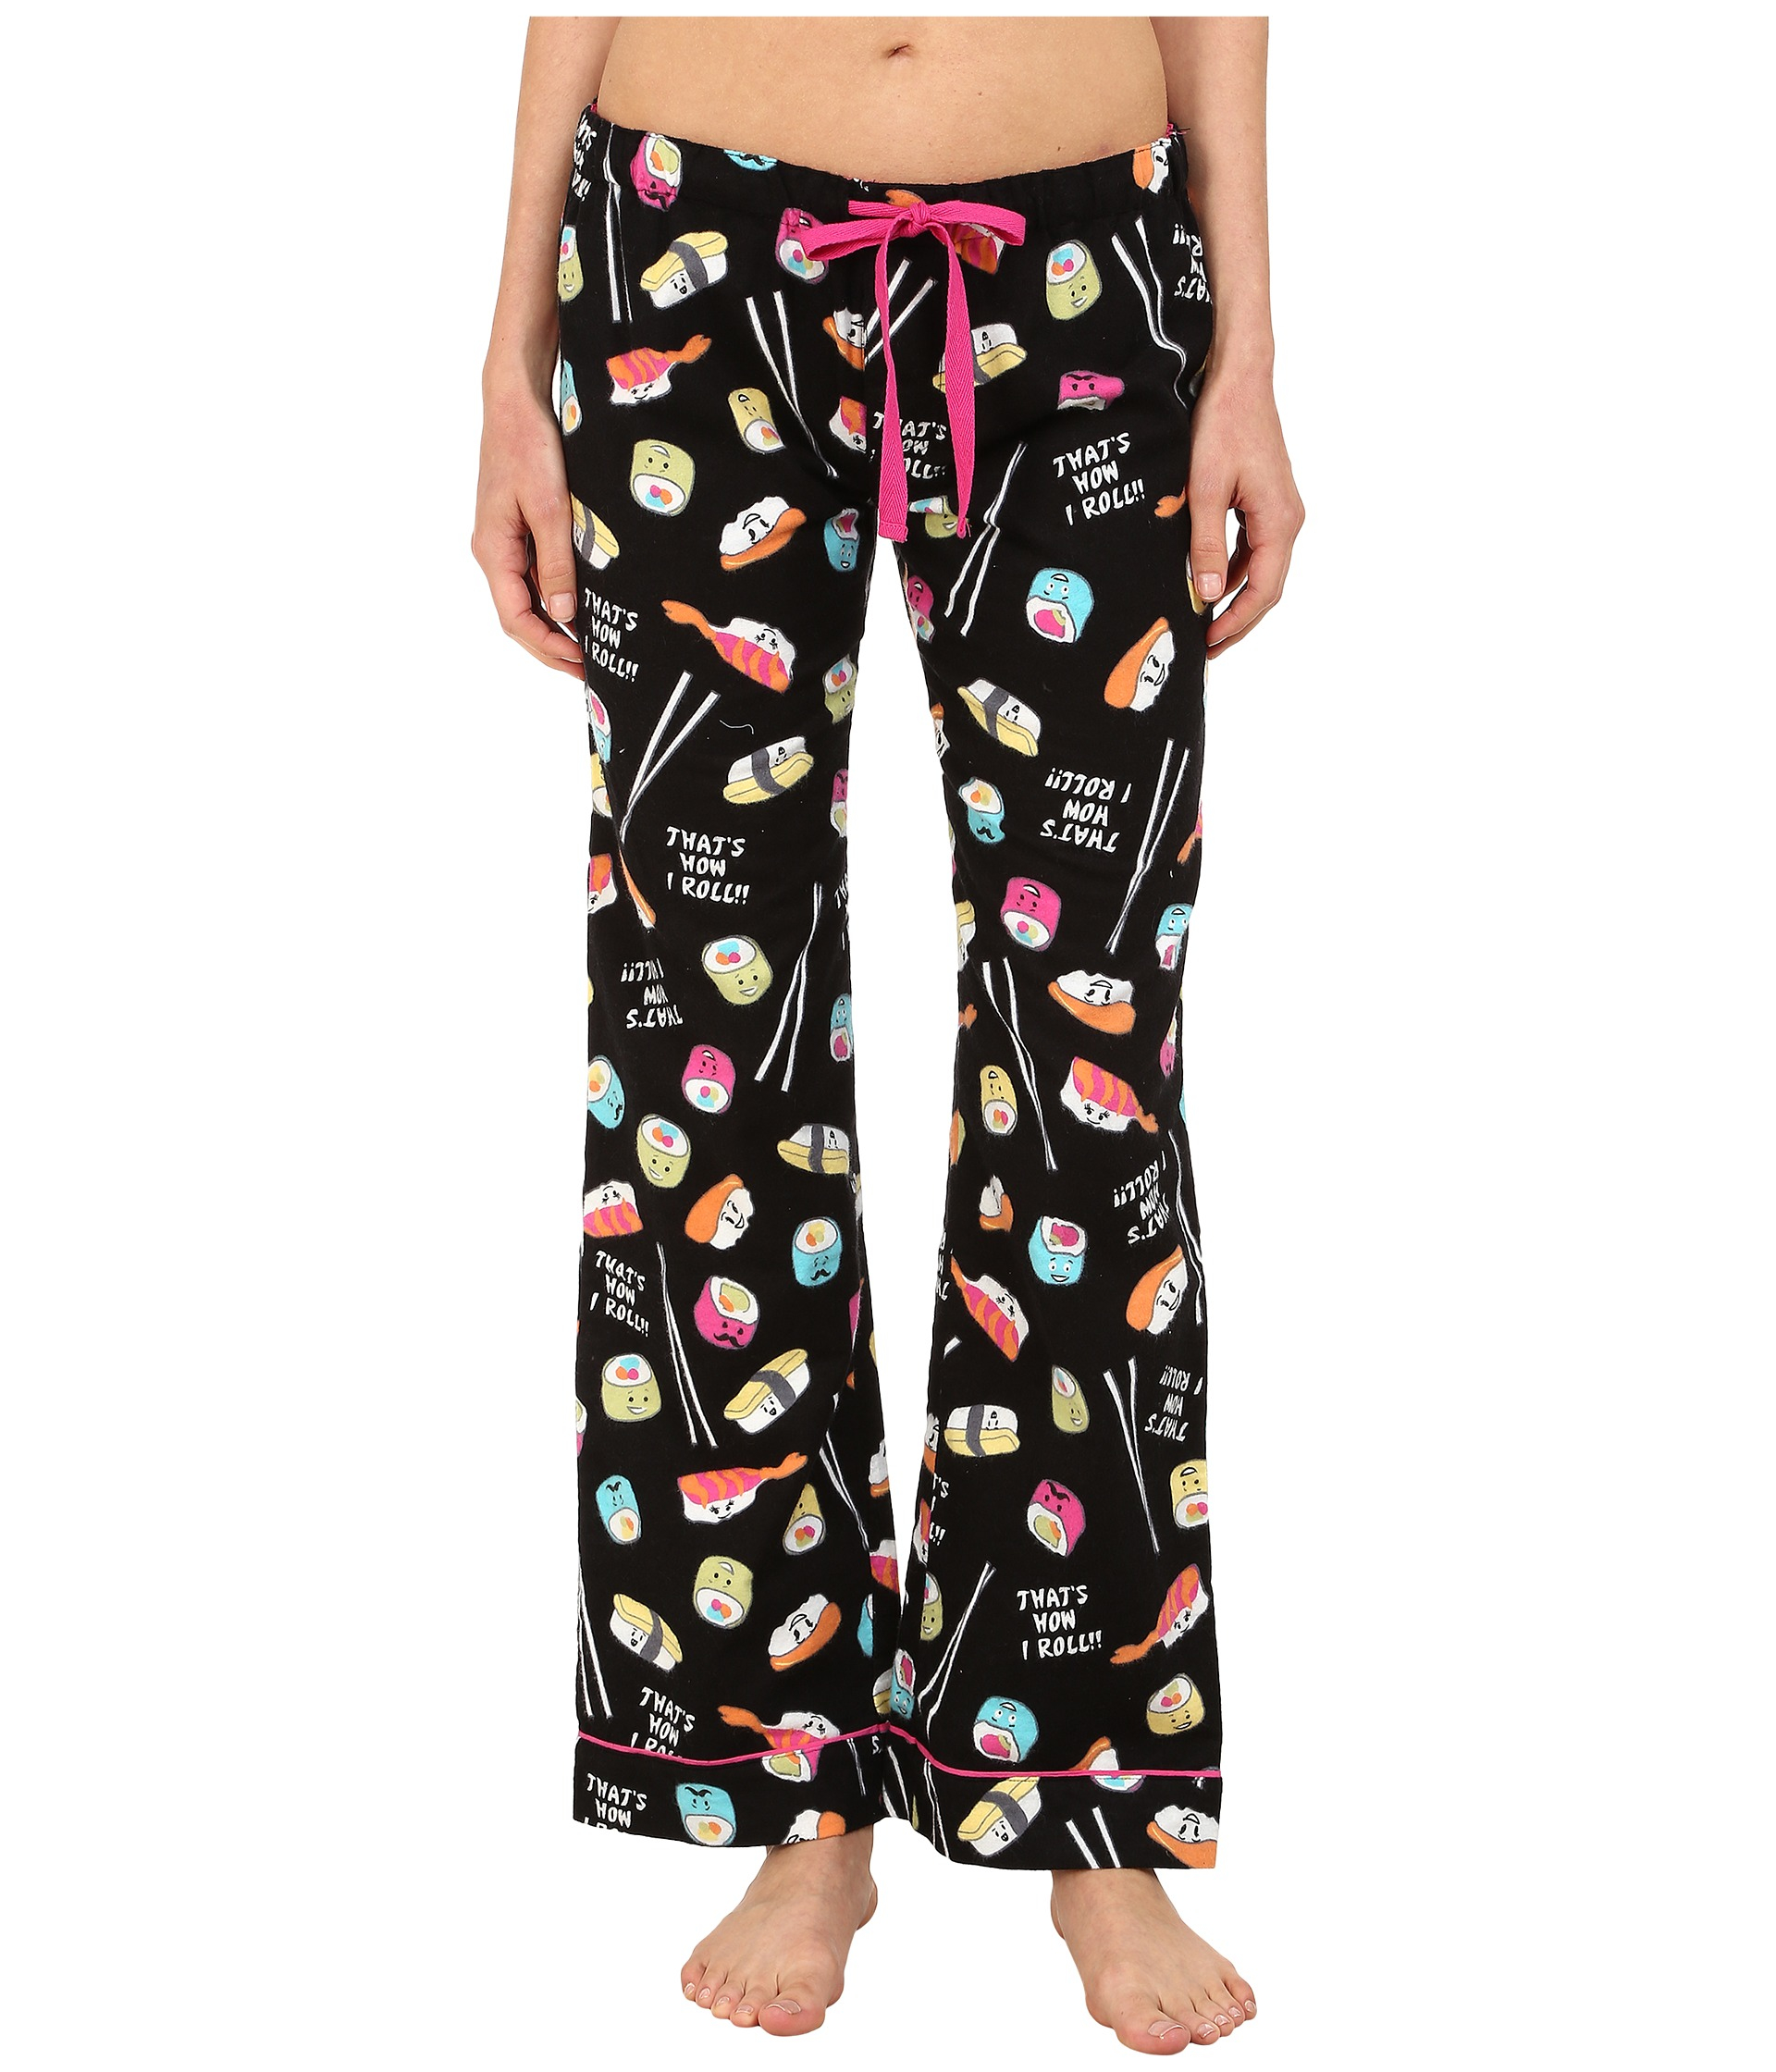 fdaf29aa954 Lyst - Pj Salvage Sushi Flannel Sleep Pants in Black